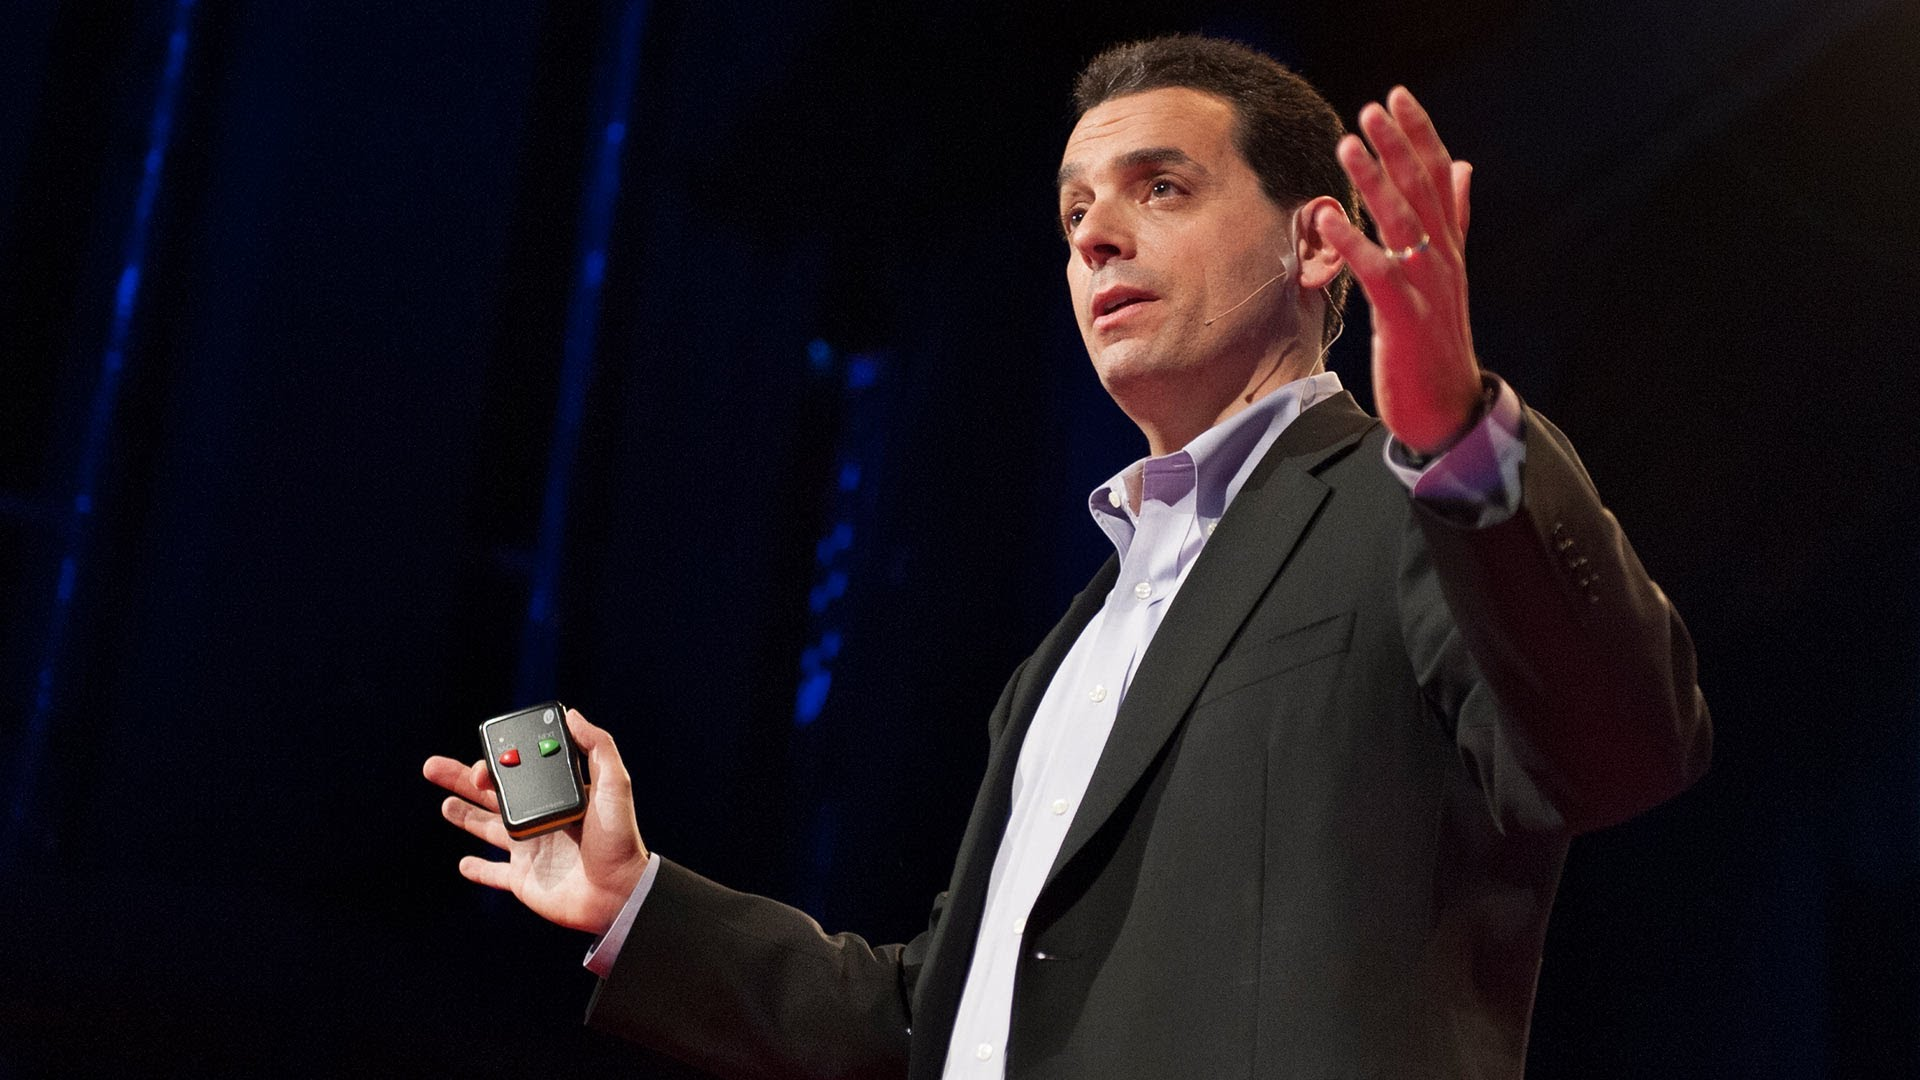 Top tips for motivating staff from Daniel Pink